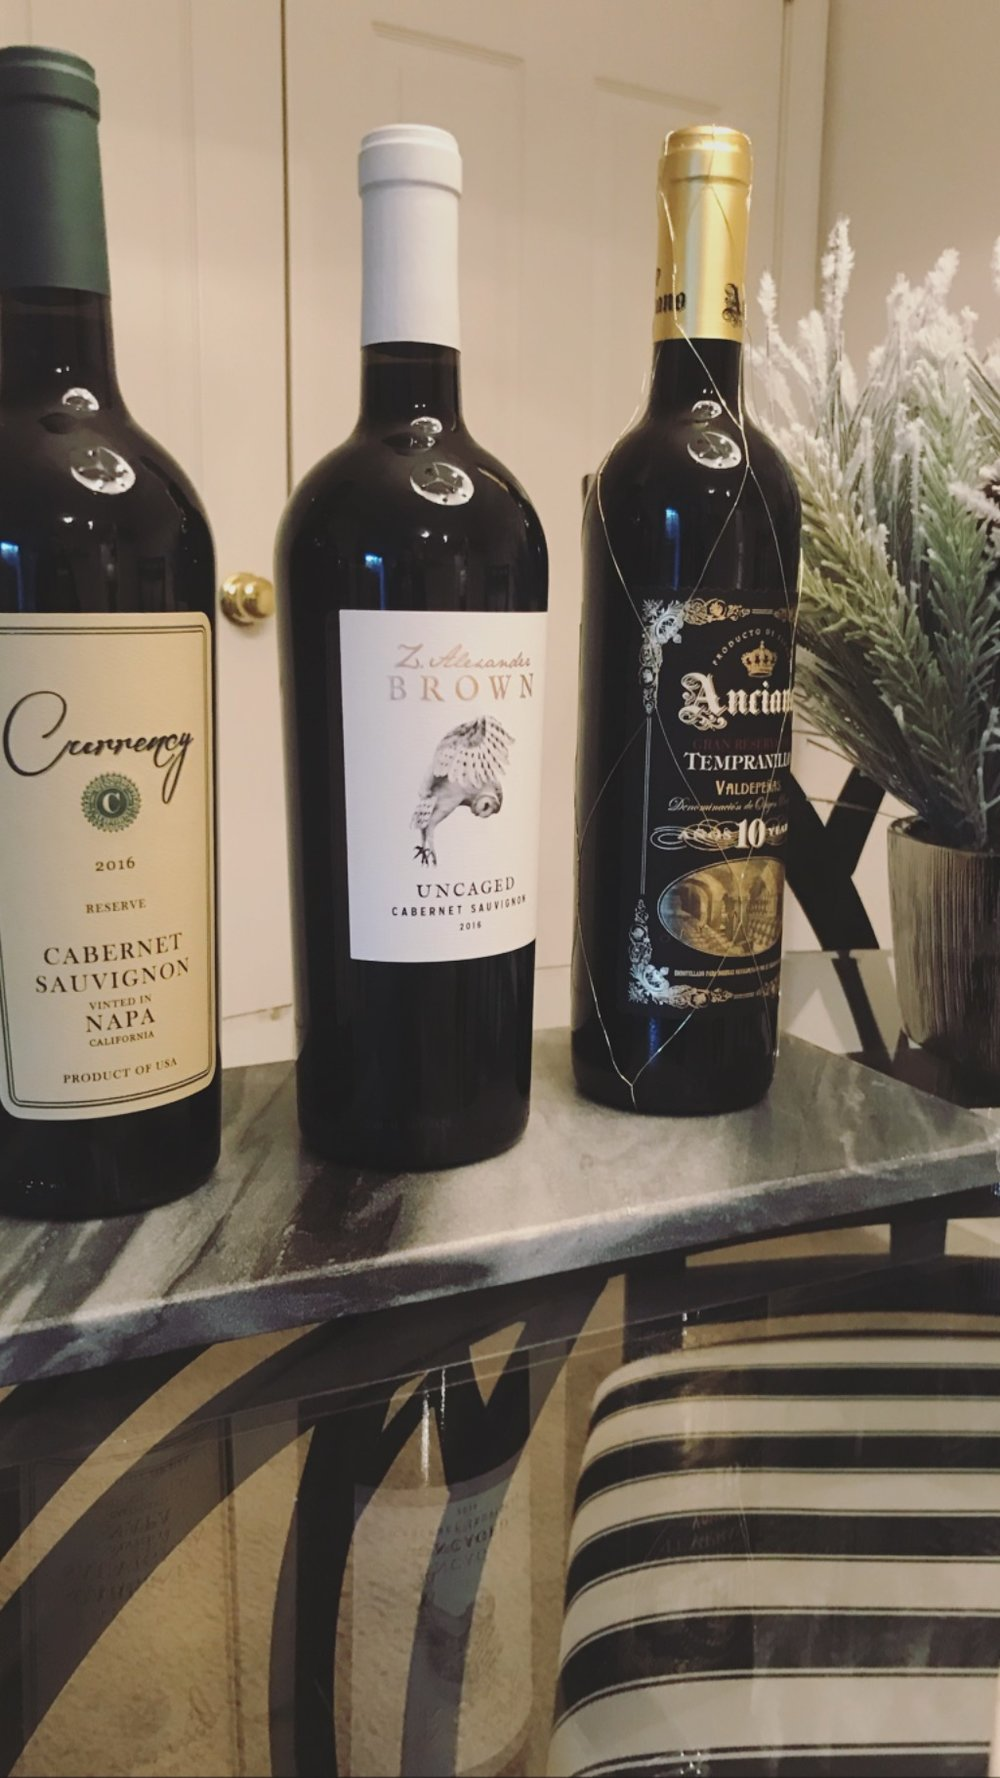 A variety of Reds… - Again, all served on a marble slab, Katie style.Two bold Cabernets, and one Old World Rioja, aged 10 years, heavenly beauty.